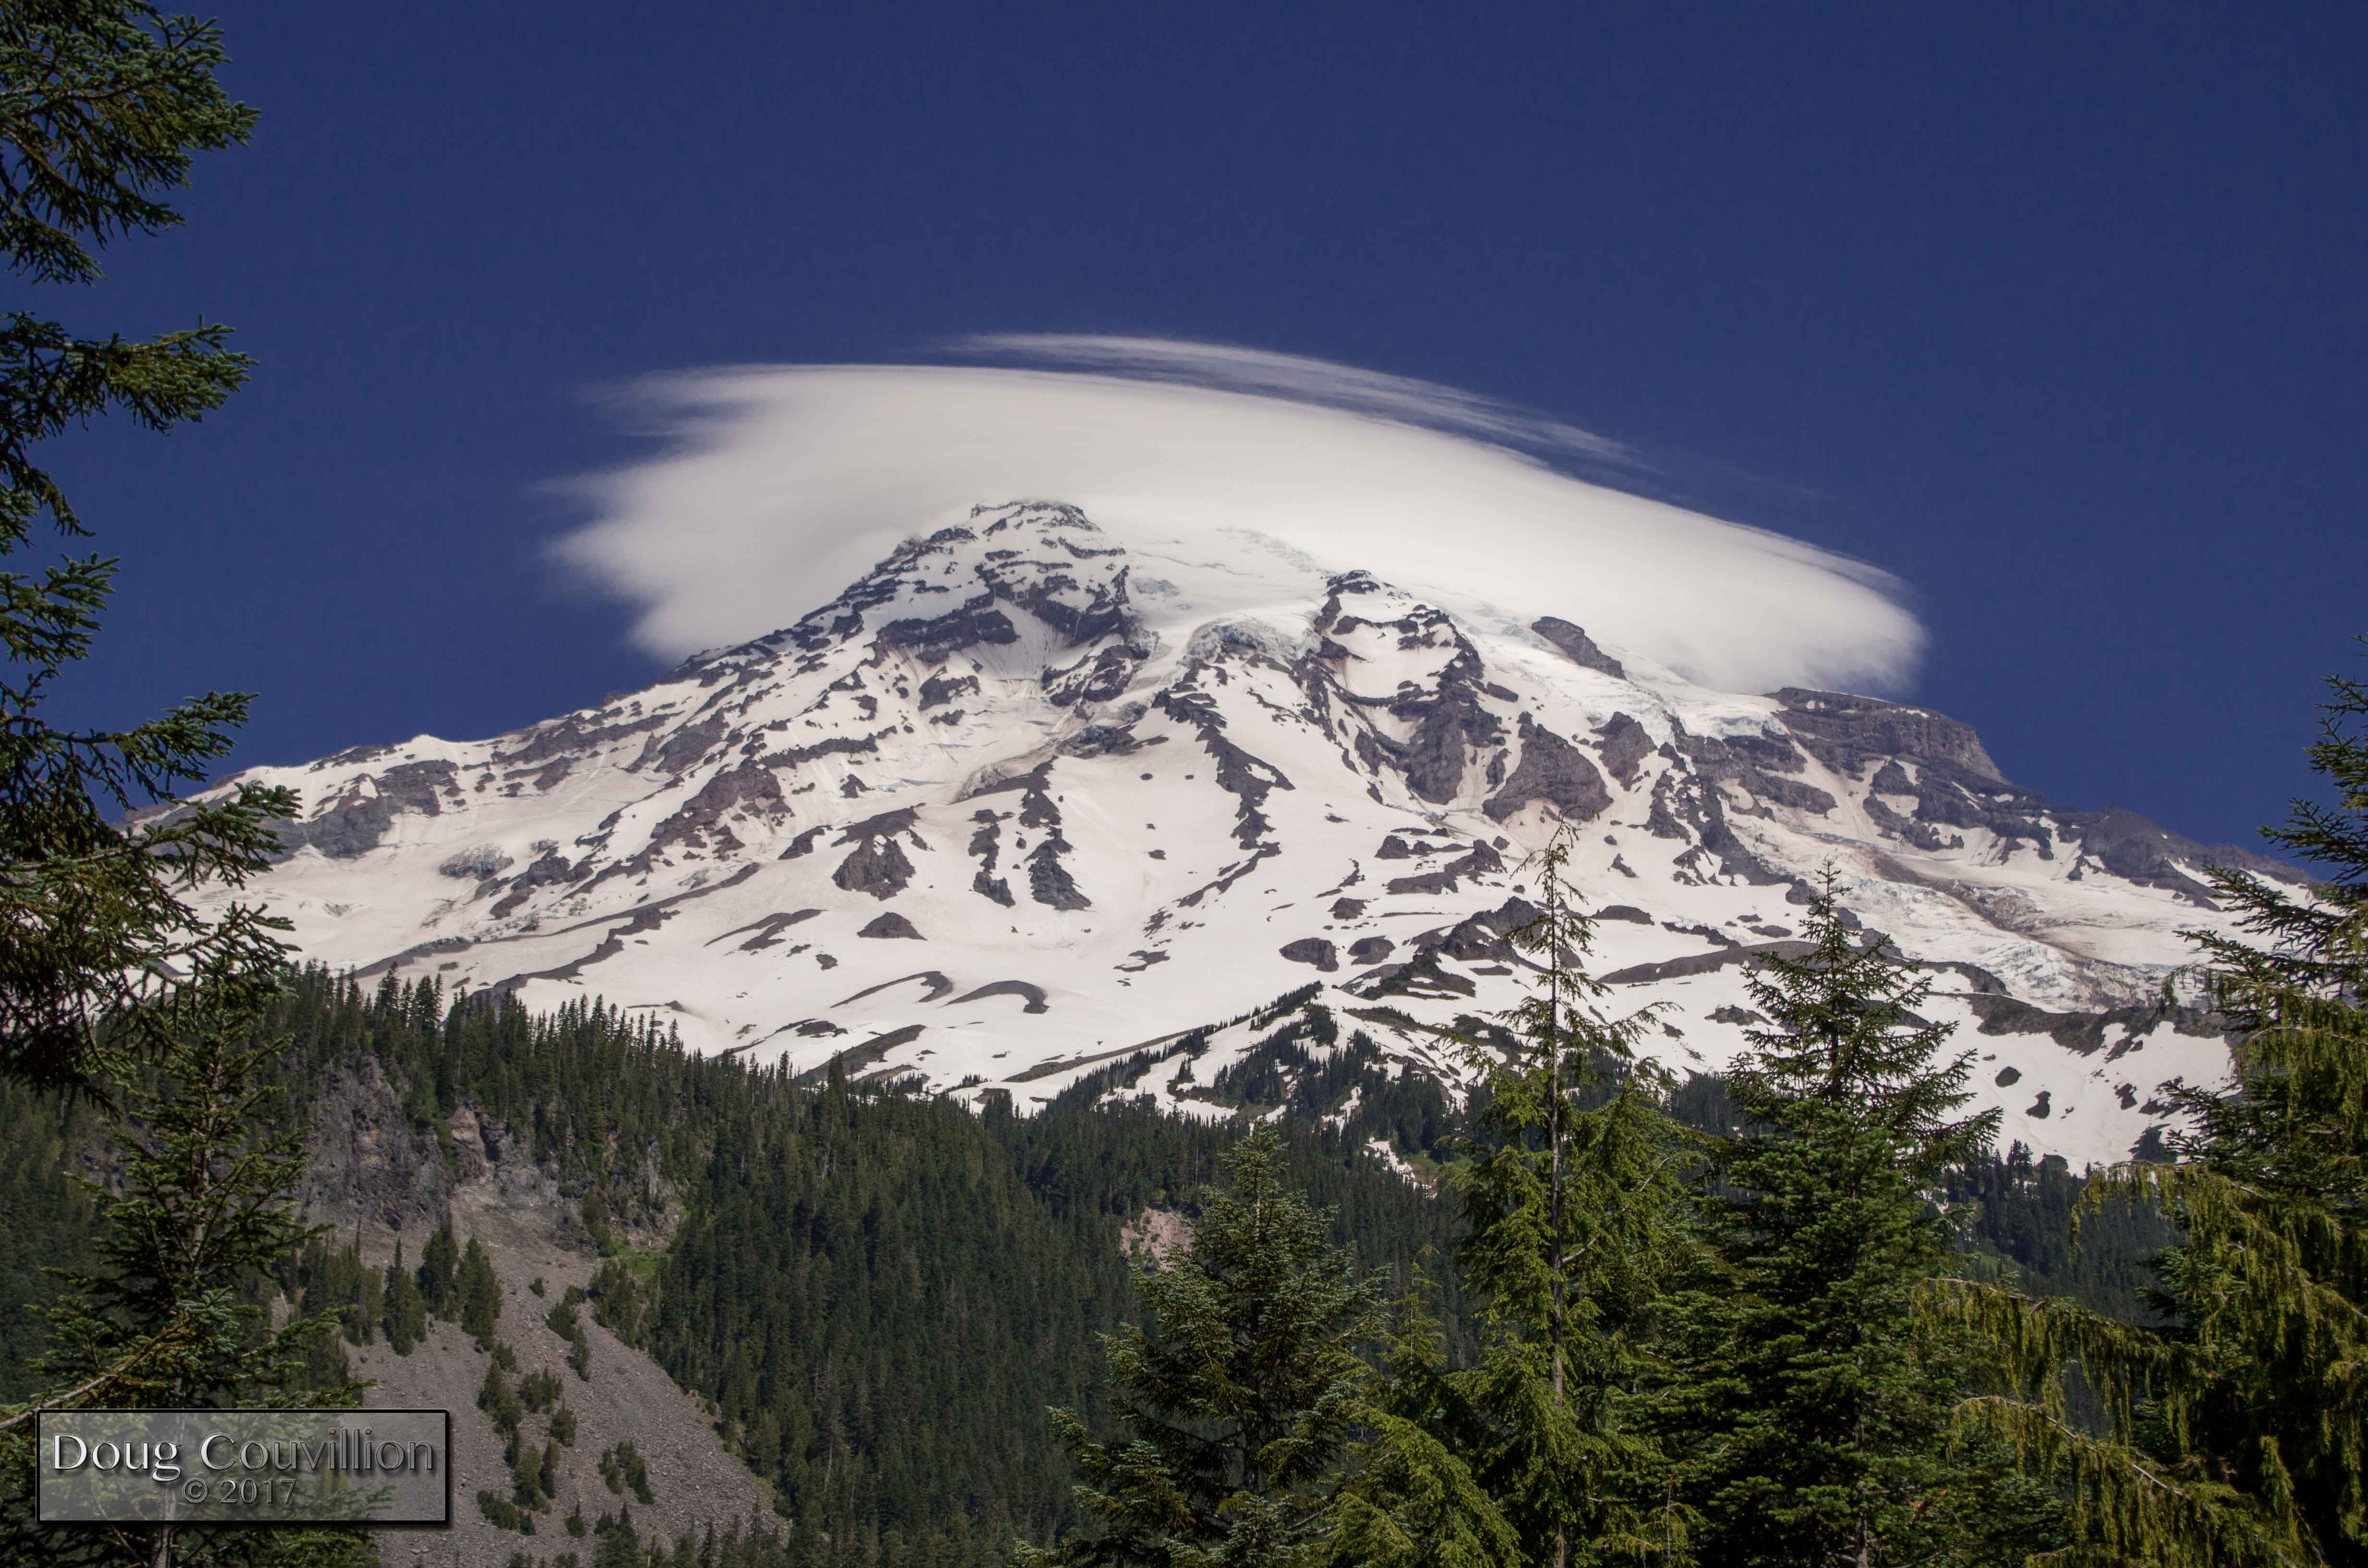 photograph of Mount Rainier with clouds around the summit by Doug Couvillion